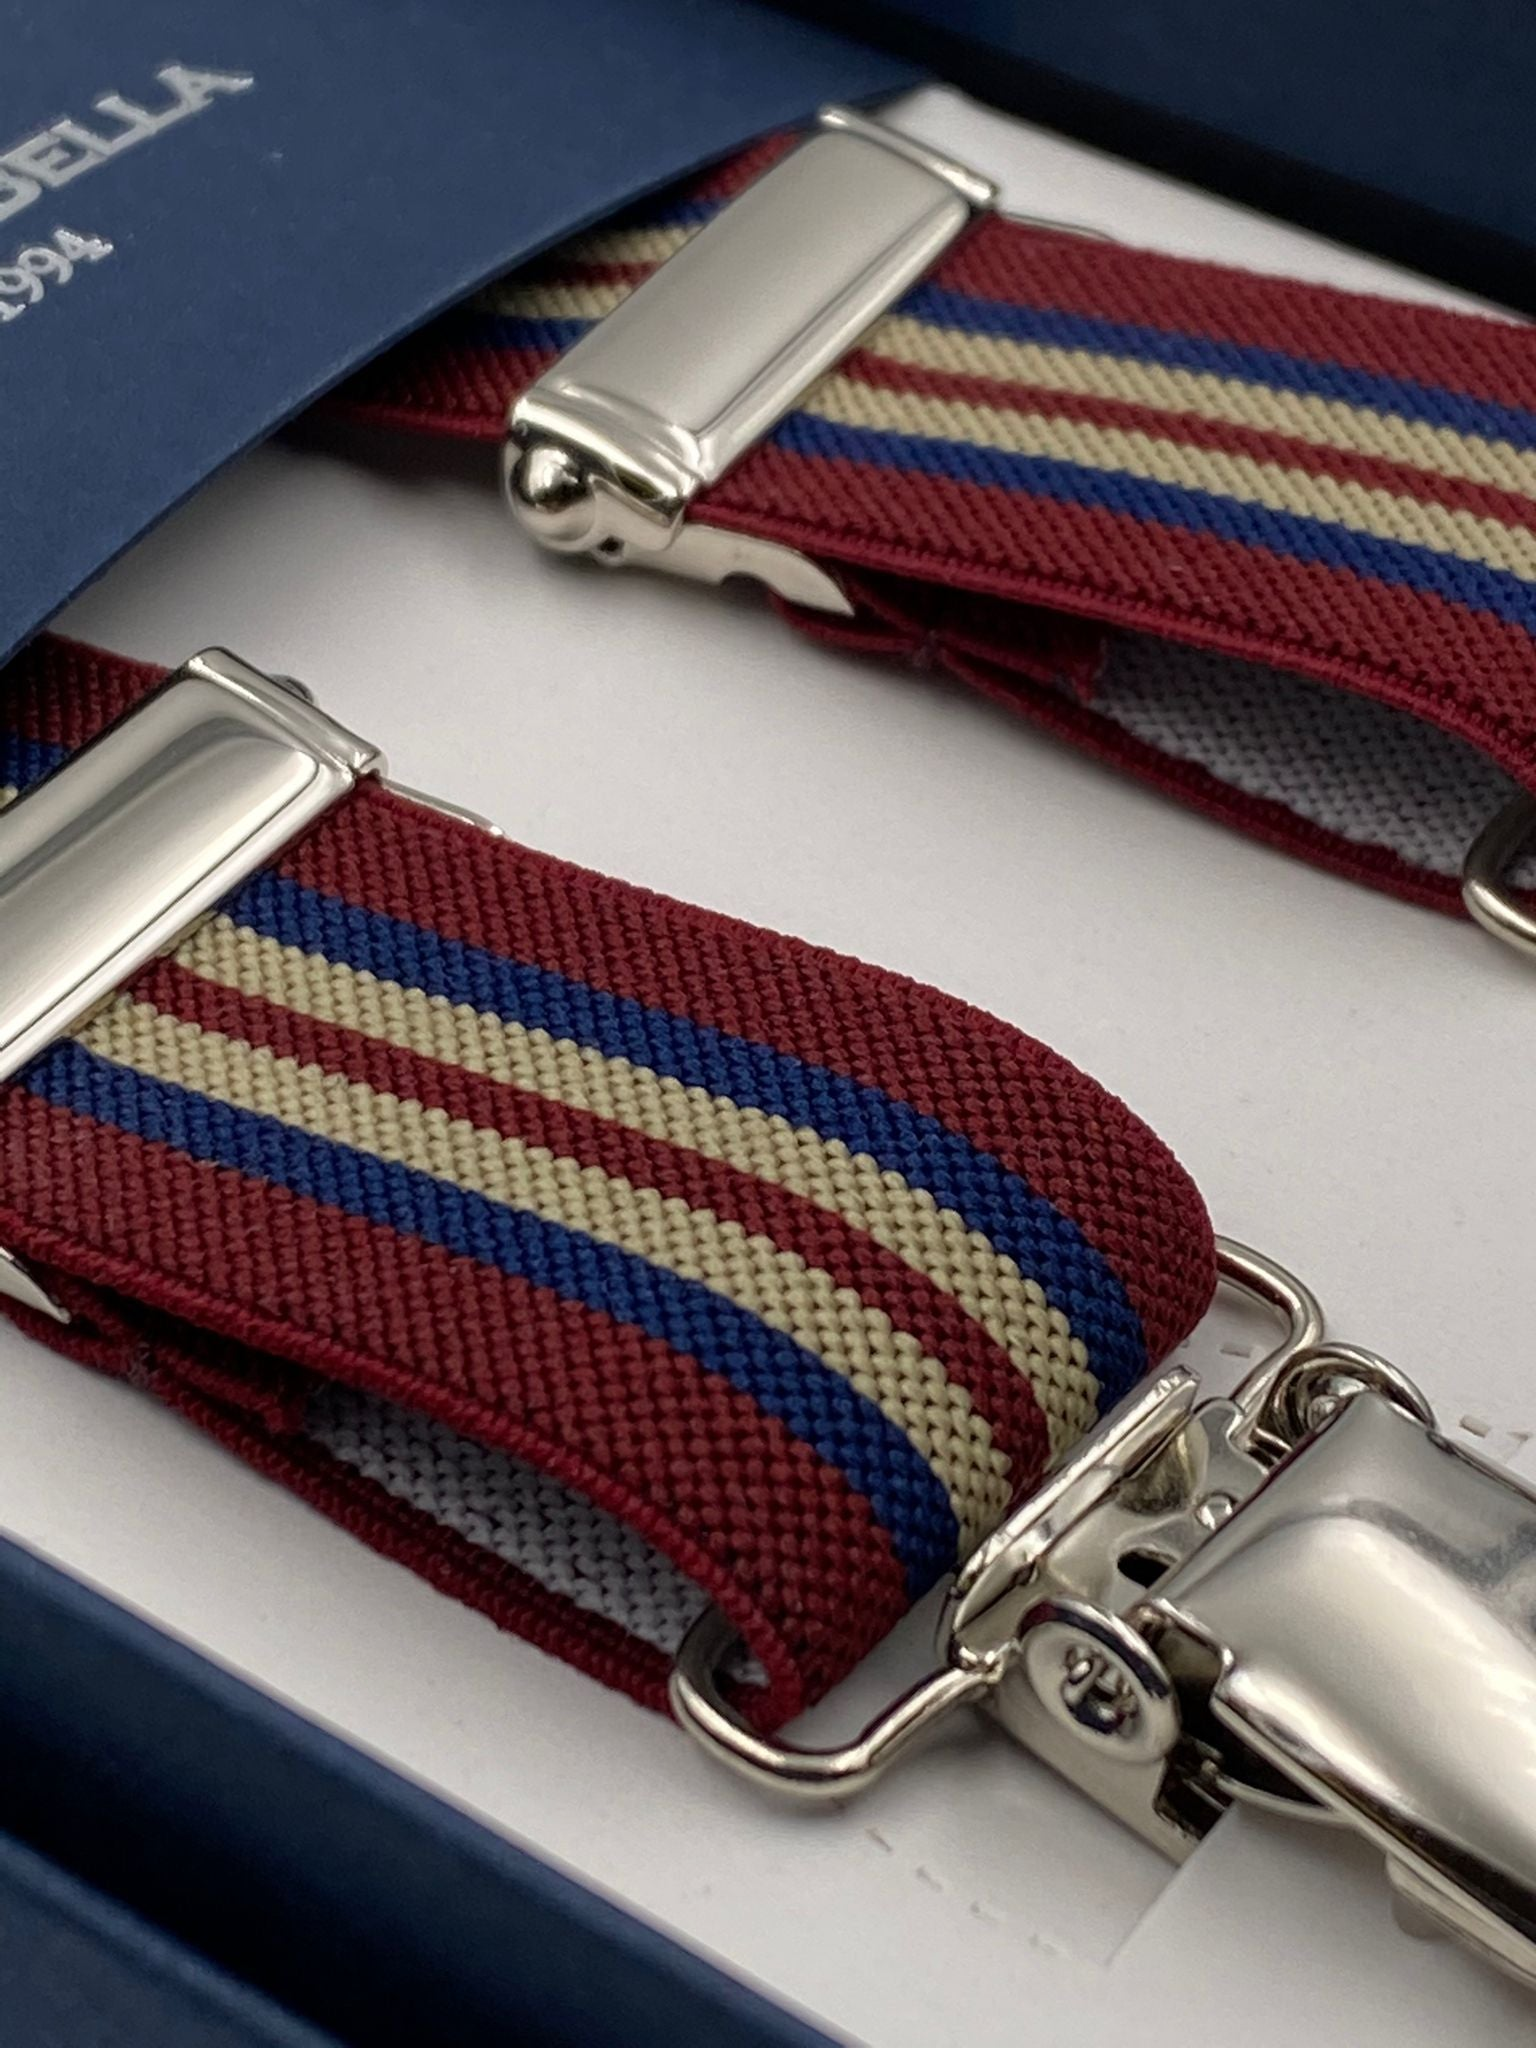 Albert Thurston for Cruciani & Bella Made in England Clip on Adjustable Sizing 25 mm elastic braces Bourgundy, Blue and Beige Stripes X-Shaped Nickel Fittings Size: L #4843